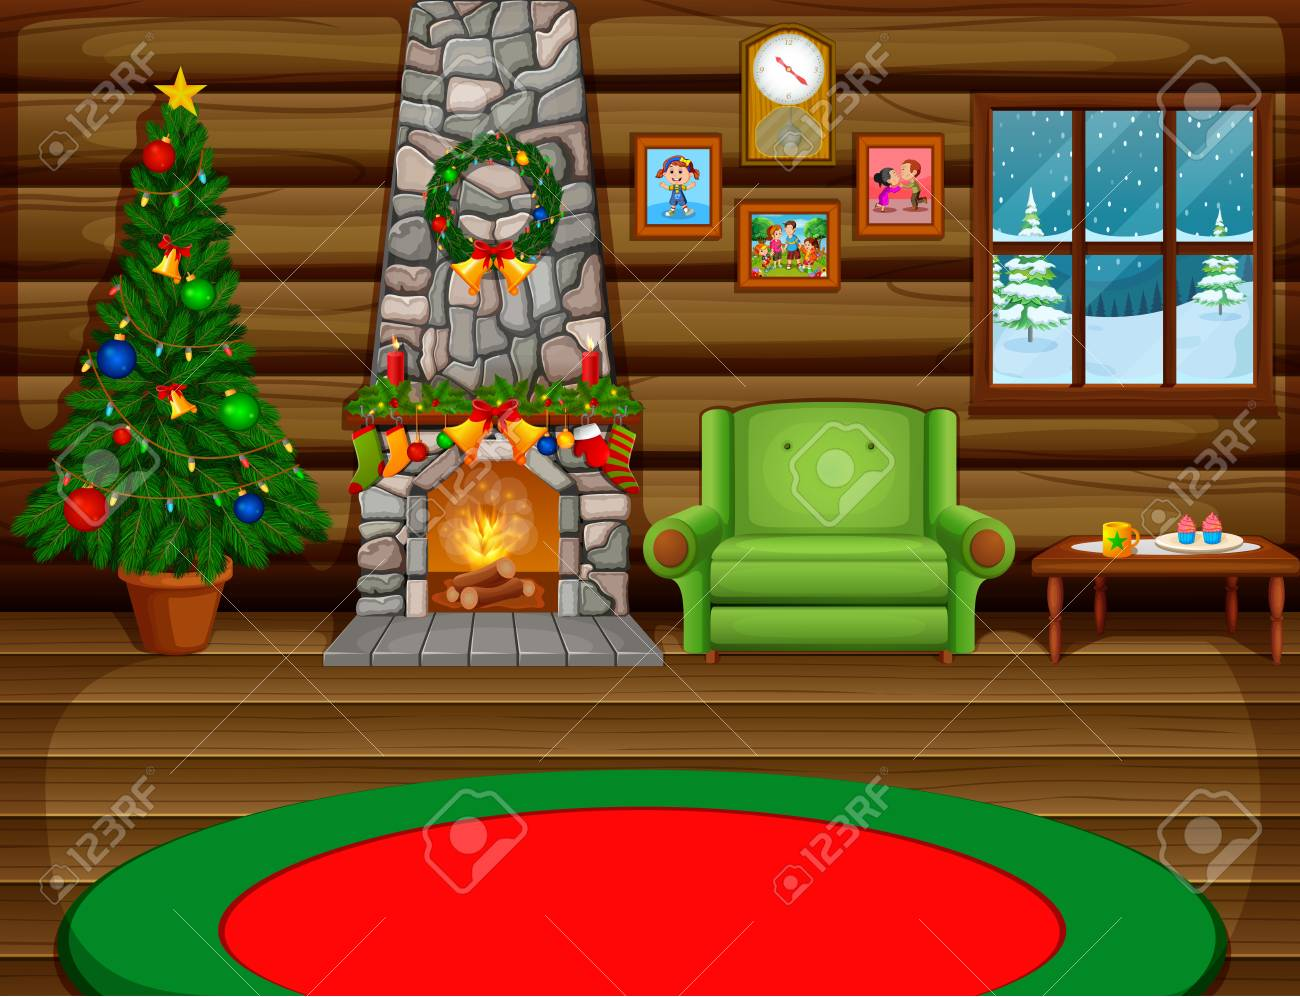 Christmas Living Room With A Tree And Fireplace Royalty Free